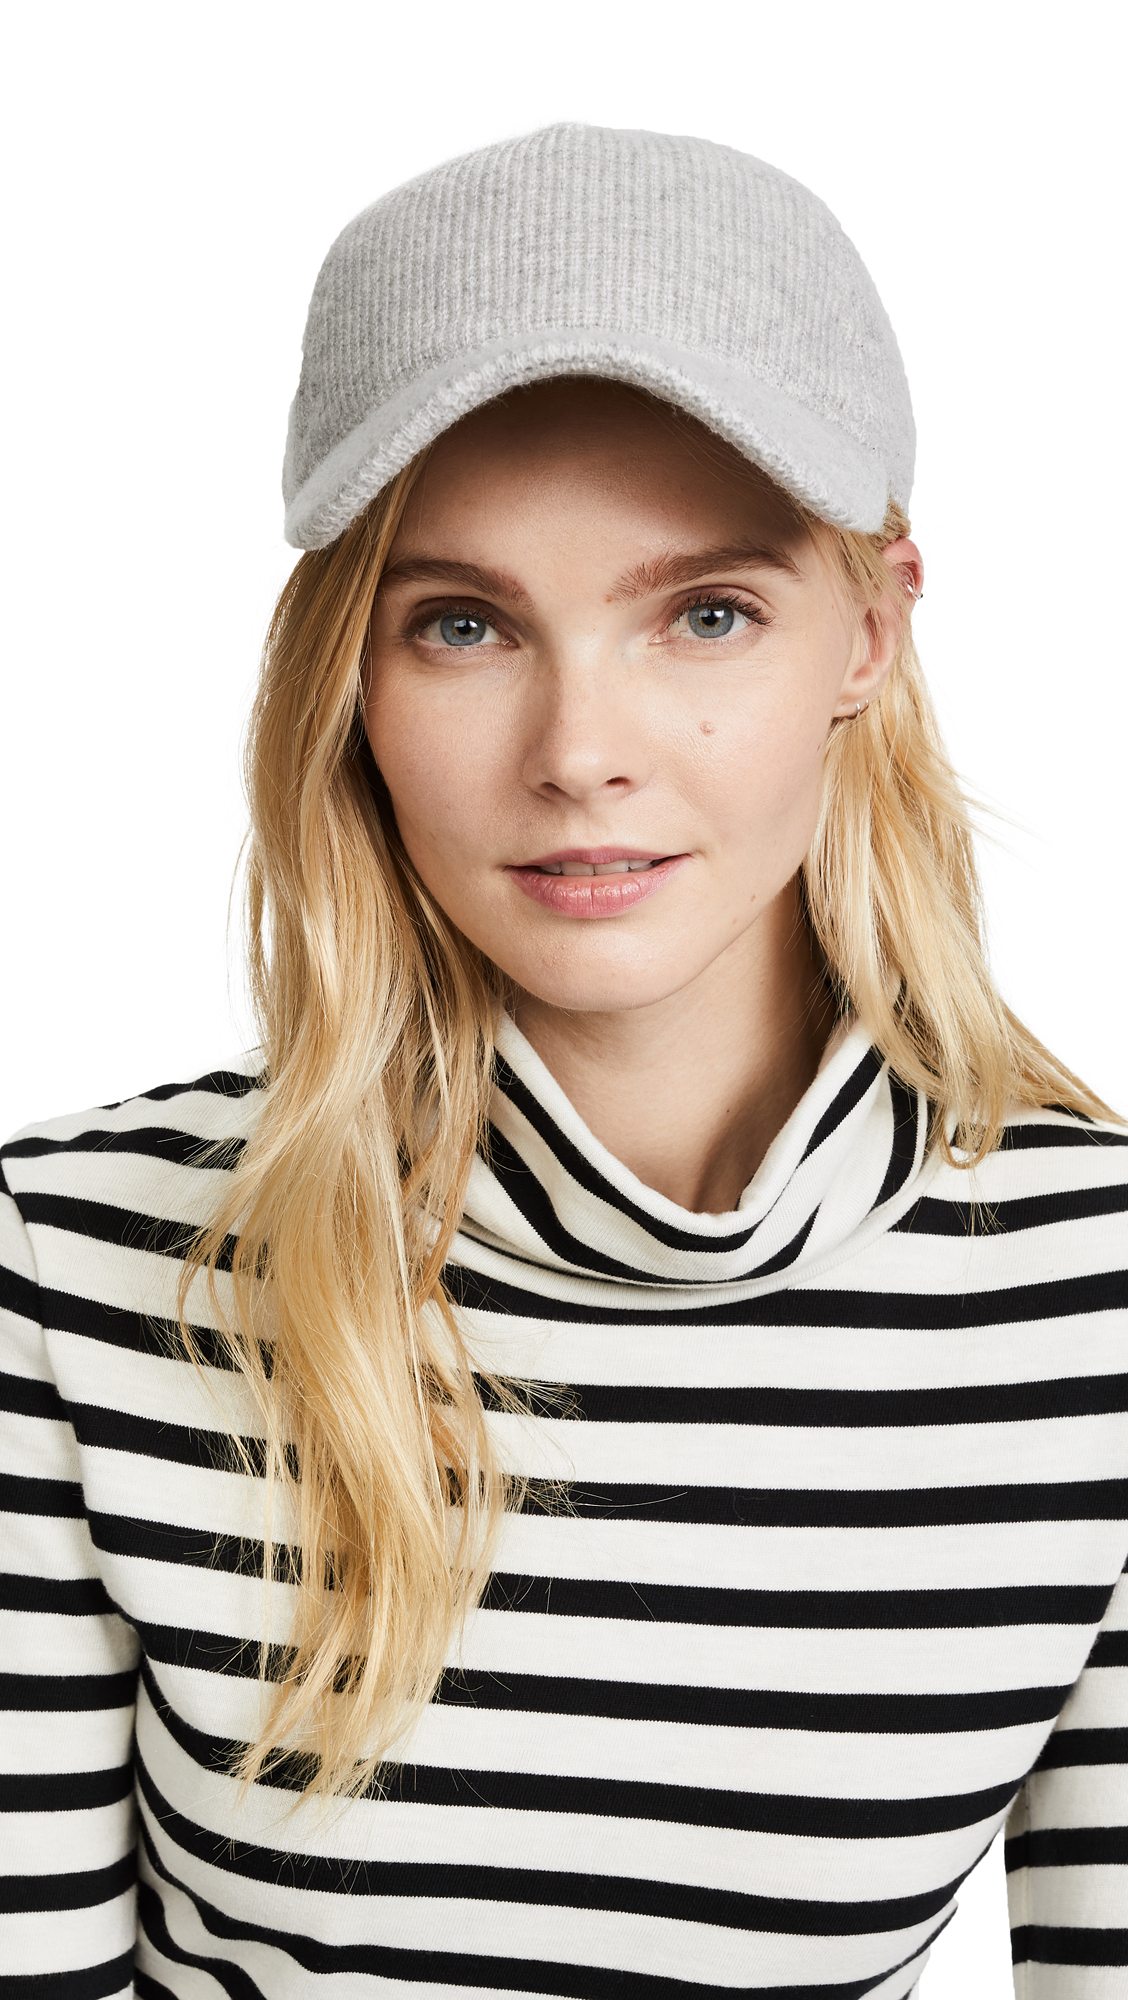 Rag & Bone Marilyn Cashmere Baseball Cap - Grey